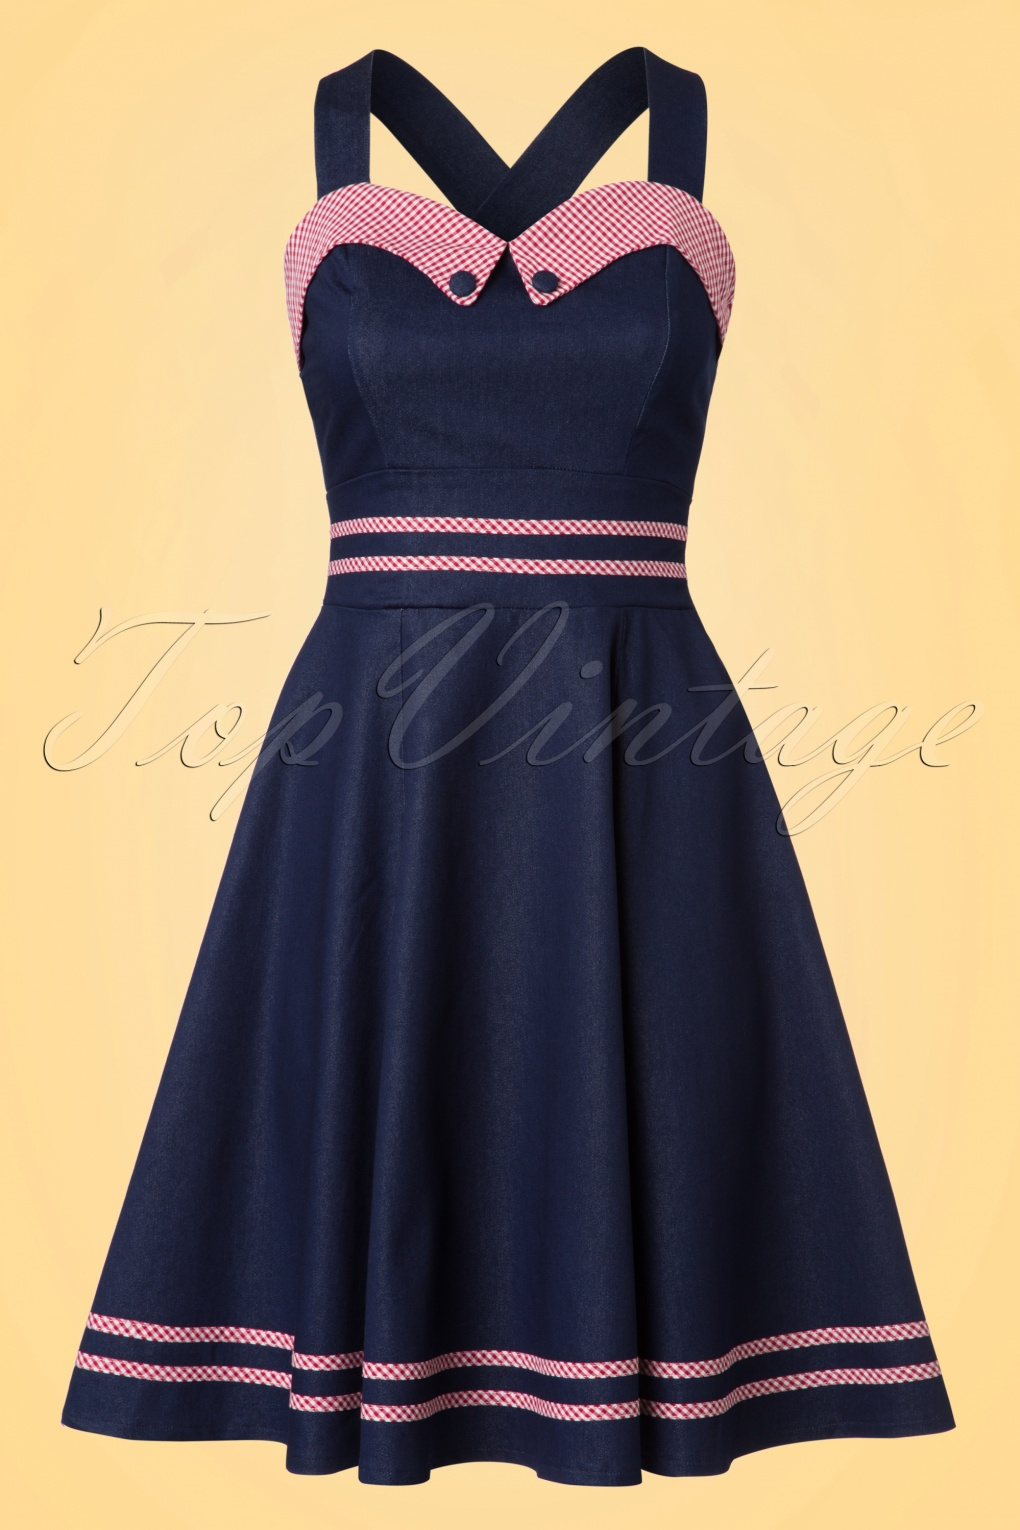 1950s Inspired Fashion: Recreate the Look 50s Jadore Halter Dress in Navy £51.80 AT vintagedancer.com